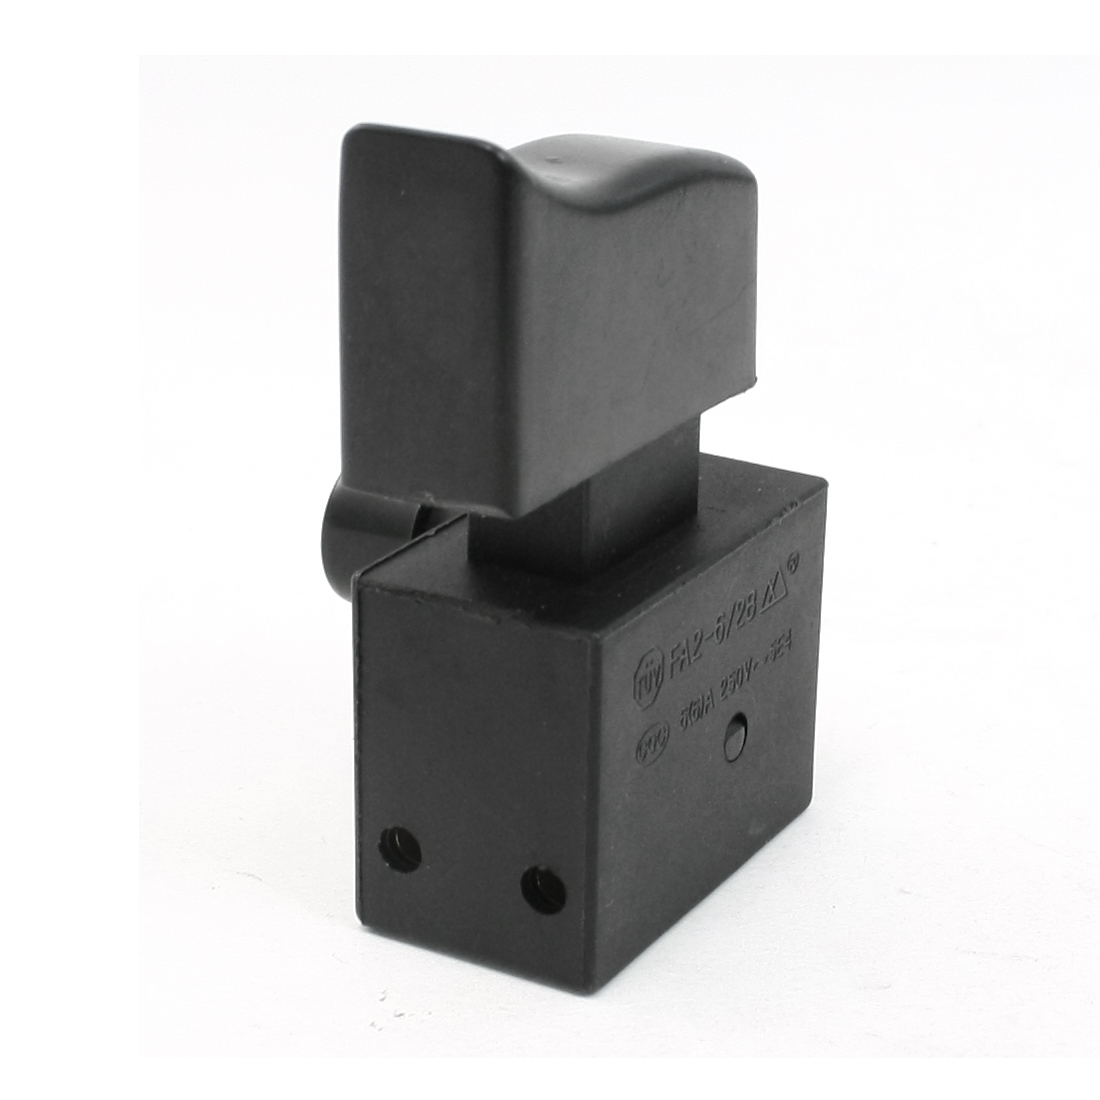 AC 250V 6A 5E4 Power Tool Locking Trigger Switch for Electric Blender